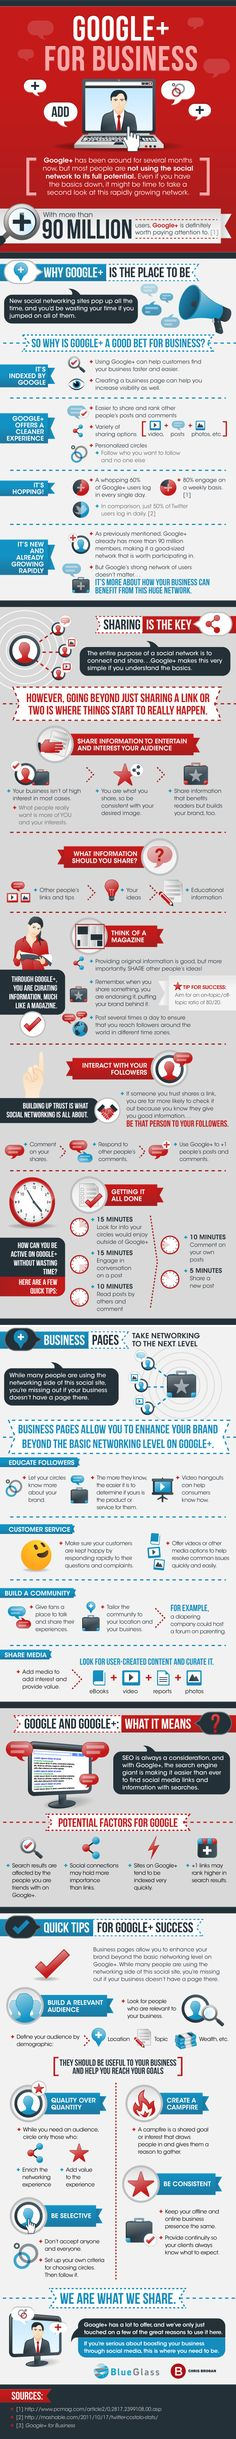 Why google + is good for business. #infographic